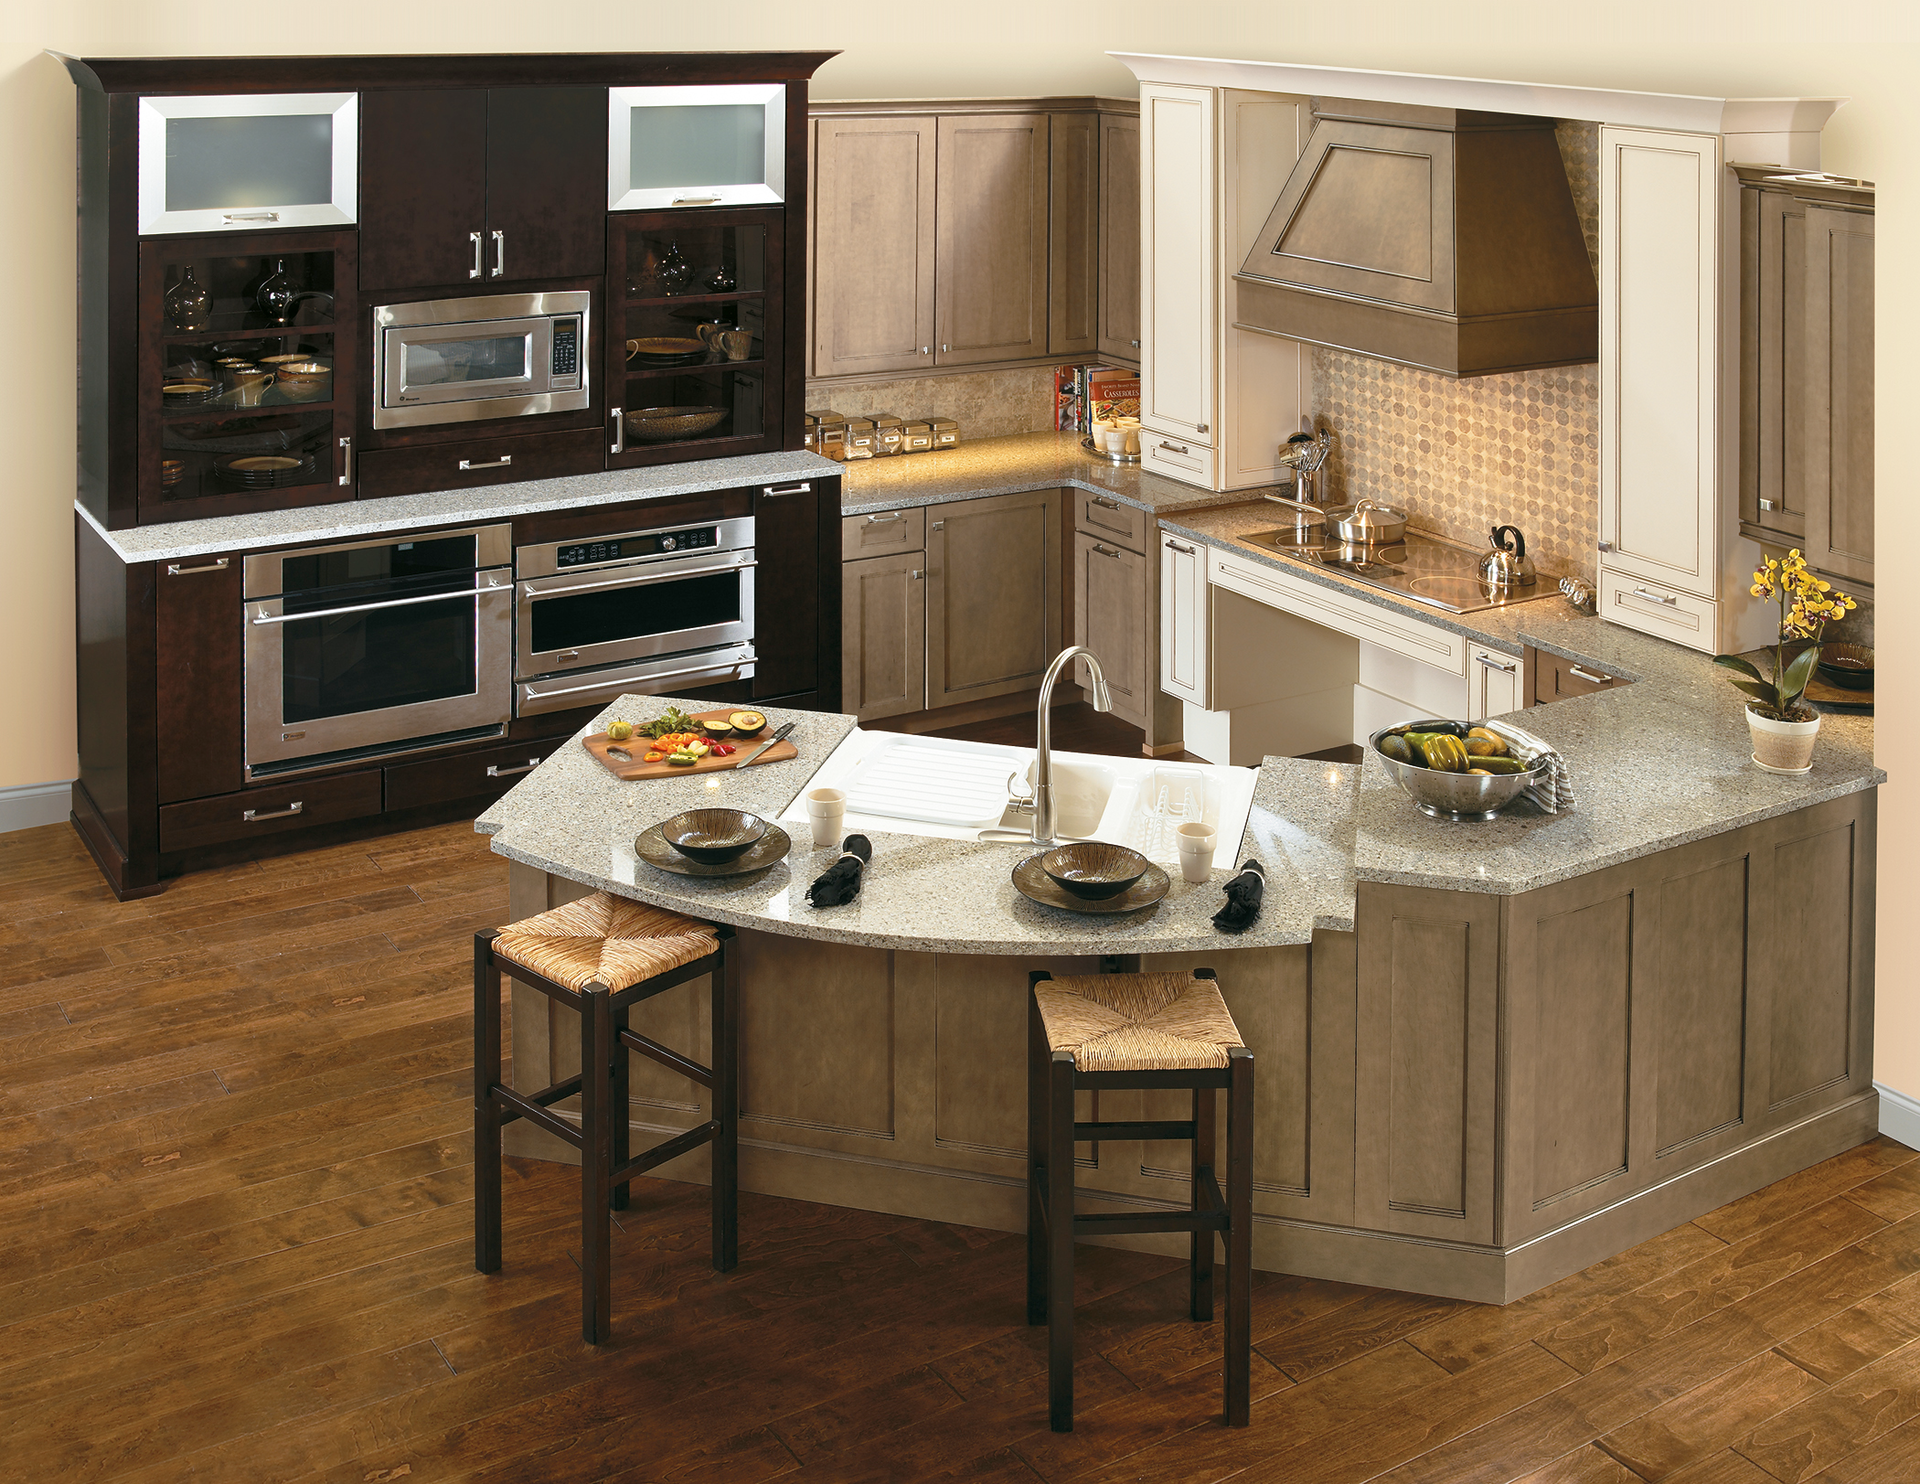 New Ideas for Aging in Place and UD   Kitchen & Bath Design News